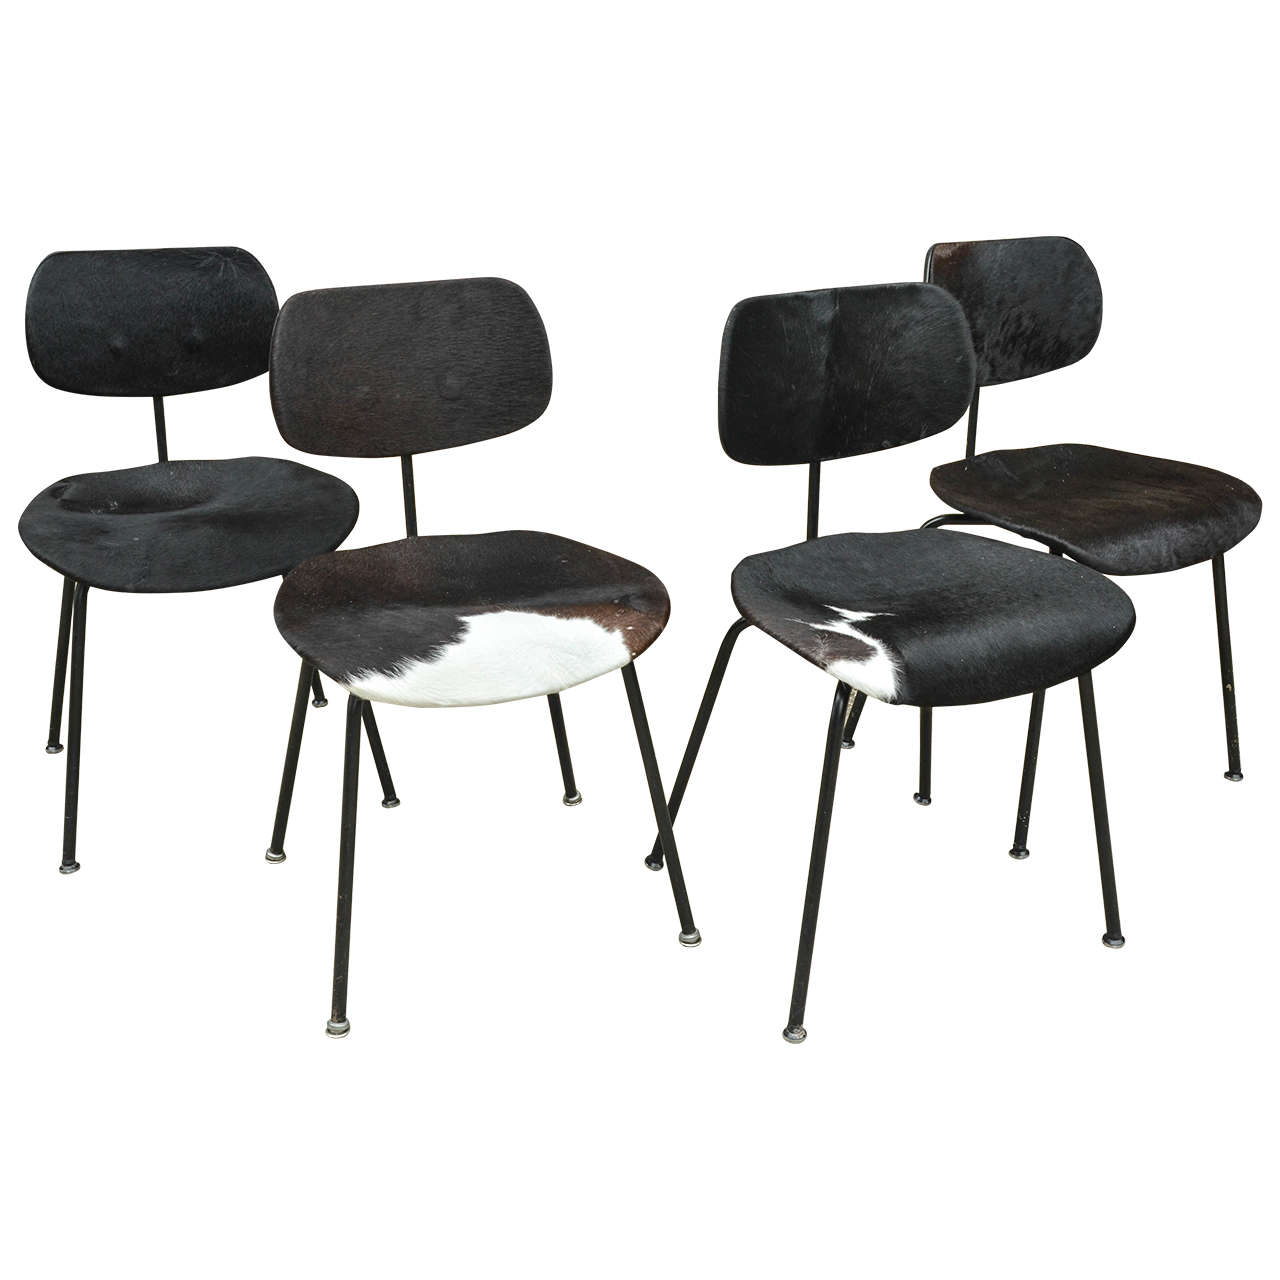 Egon Eiermann Two Pair Of Se 68 Chairs By Egon Eiermann In Original Cowhide